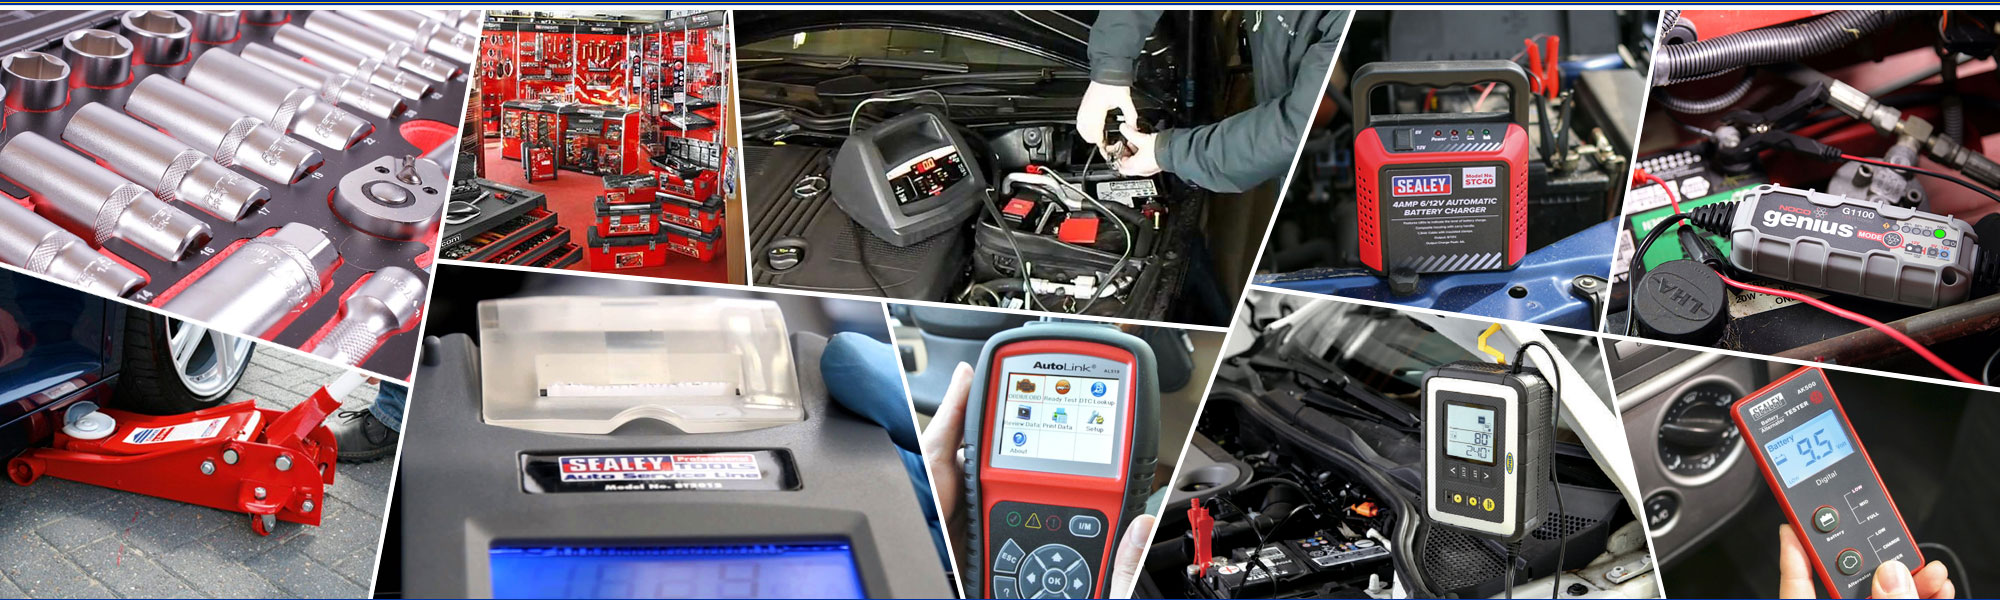 Auto Electrical Parts Components Buy Gt Automotive Testers Continuity Tester 6v 12v Contact Us